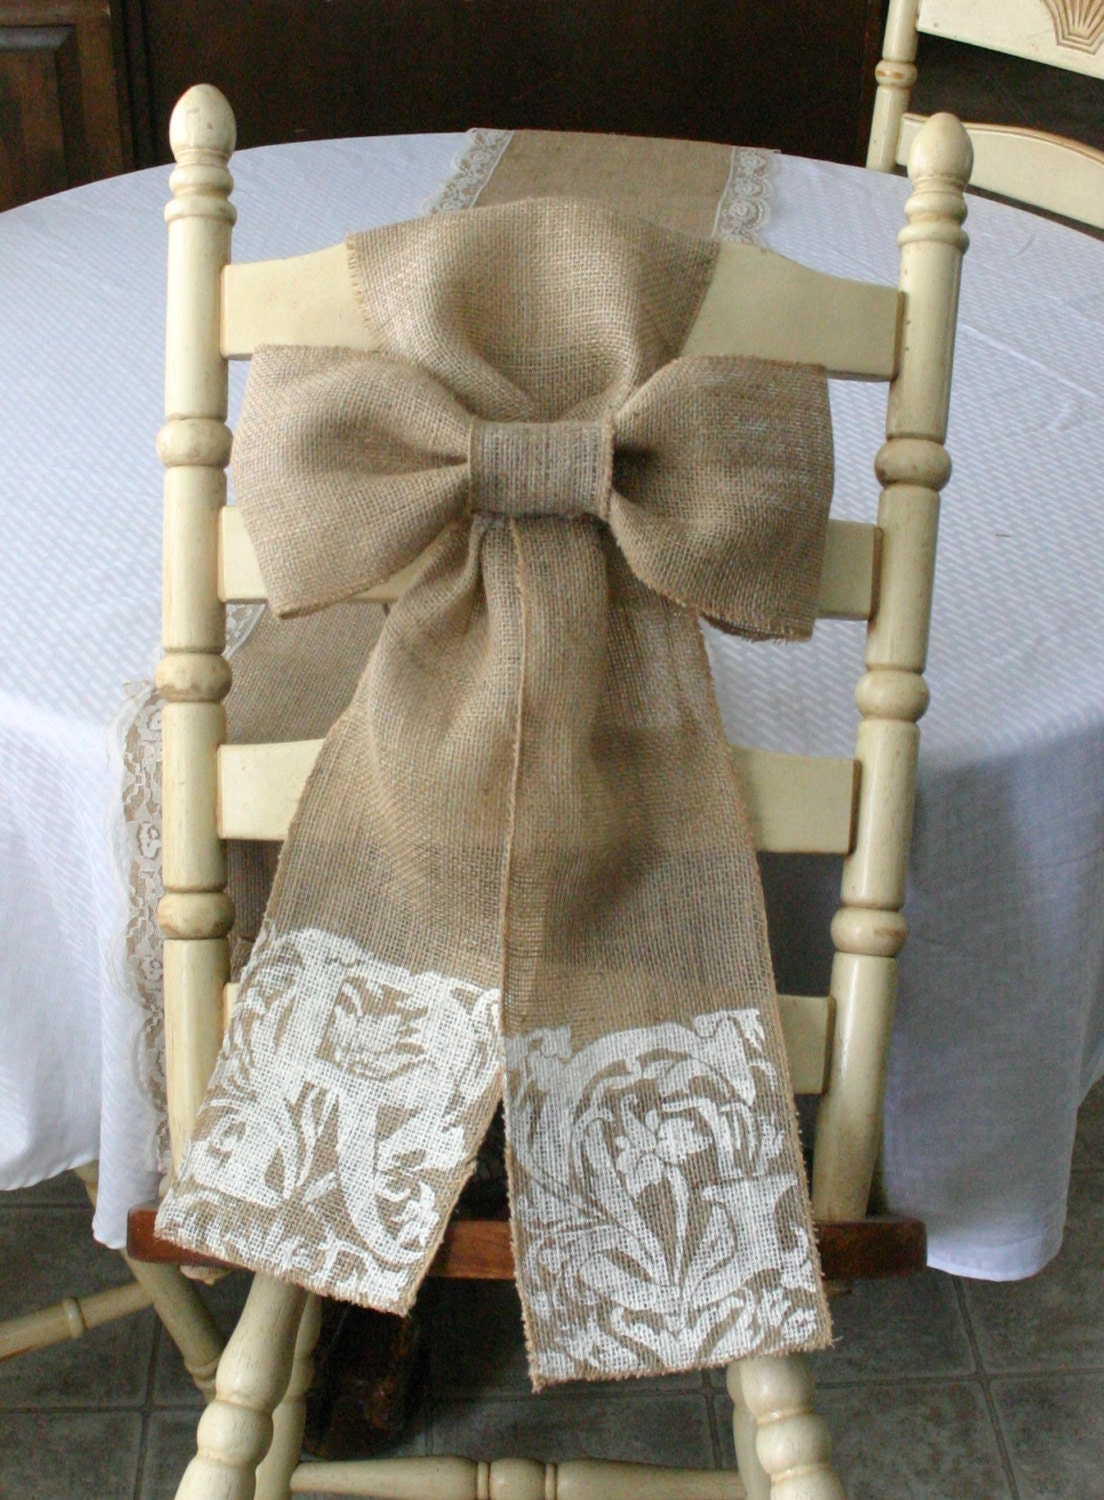 TWO Burlap pew bows shabby chic country chic by Bannerbanquet